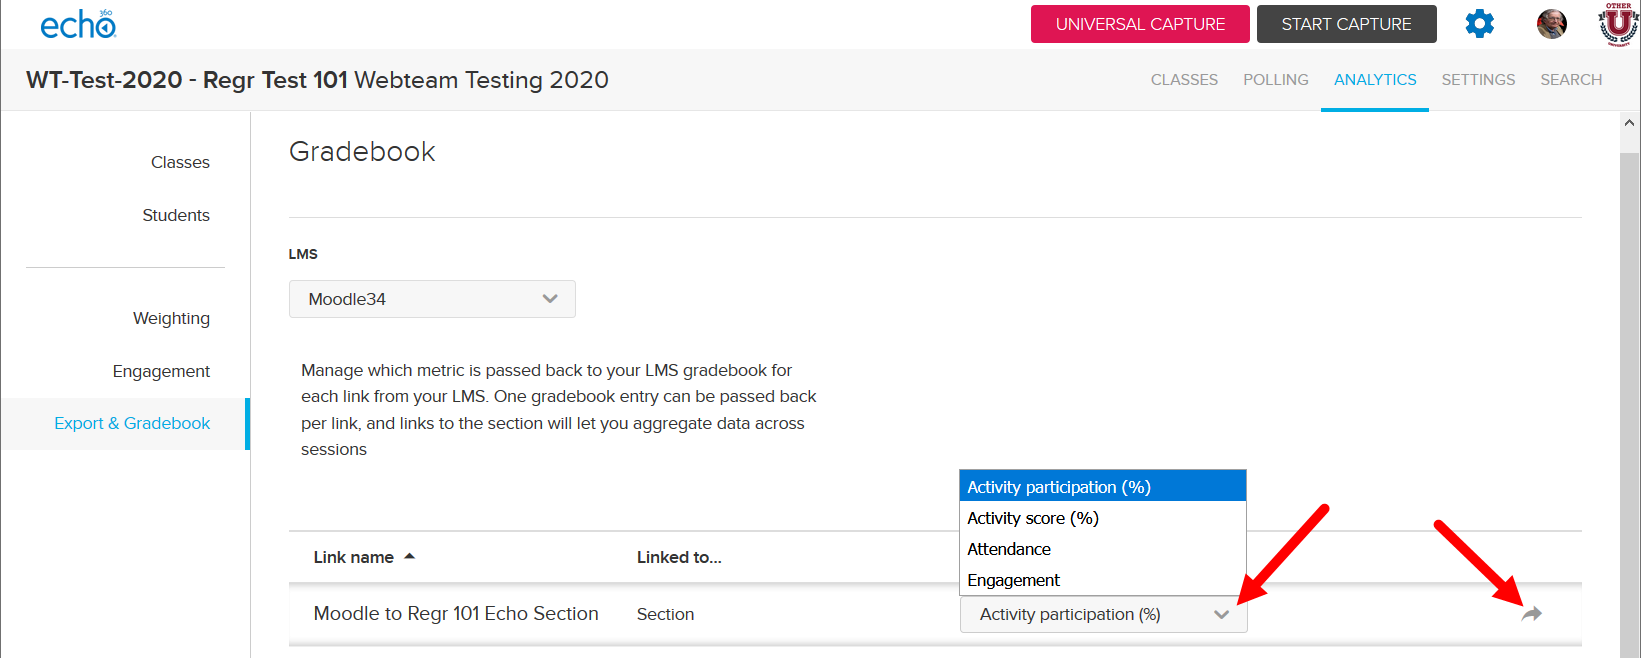 LMS Gradebook Exports metric selection list open with options shown and export icon identified for steps as described